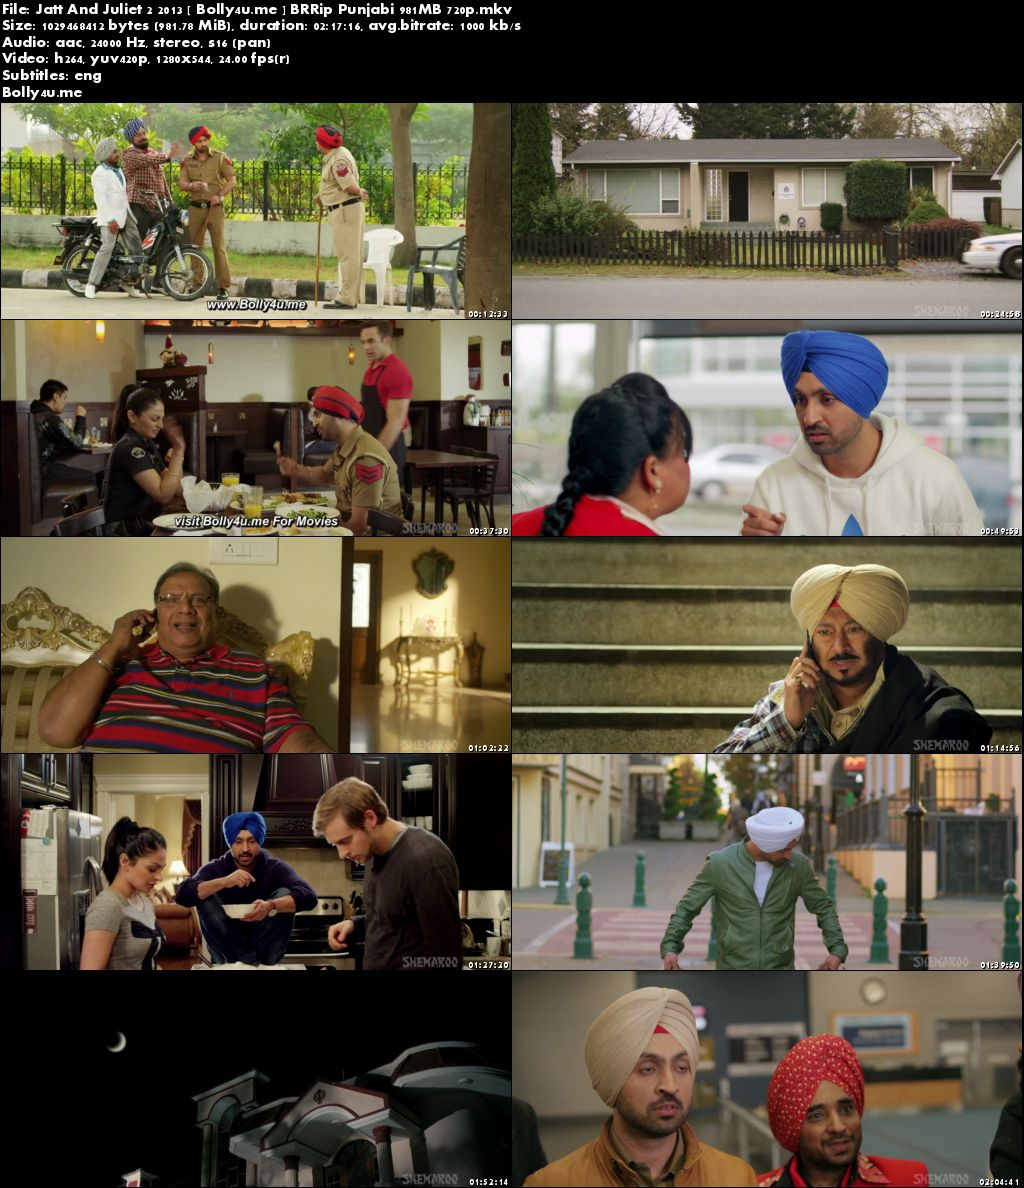 Jatt And Juliet 2 2013 BRRip 950MB Punjabi 720p Download